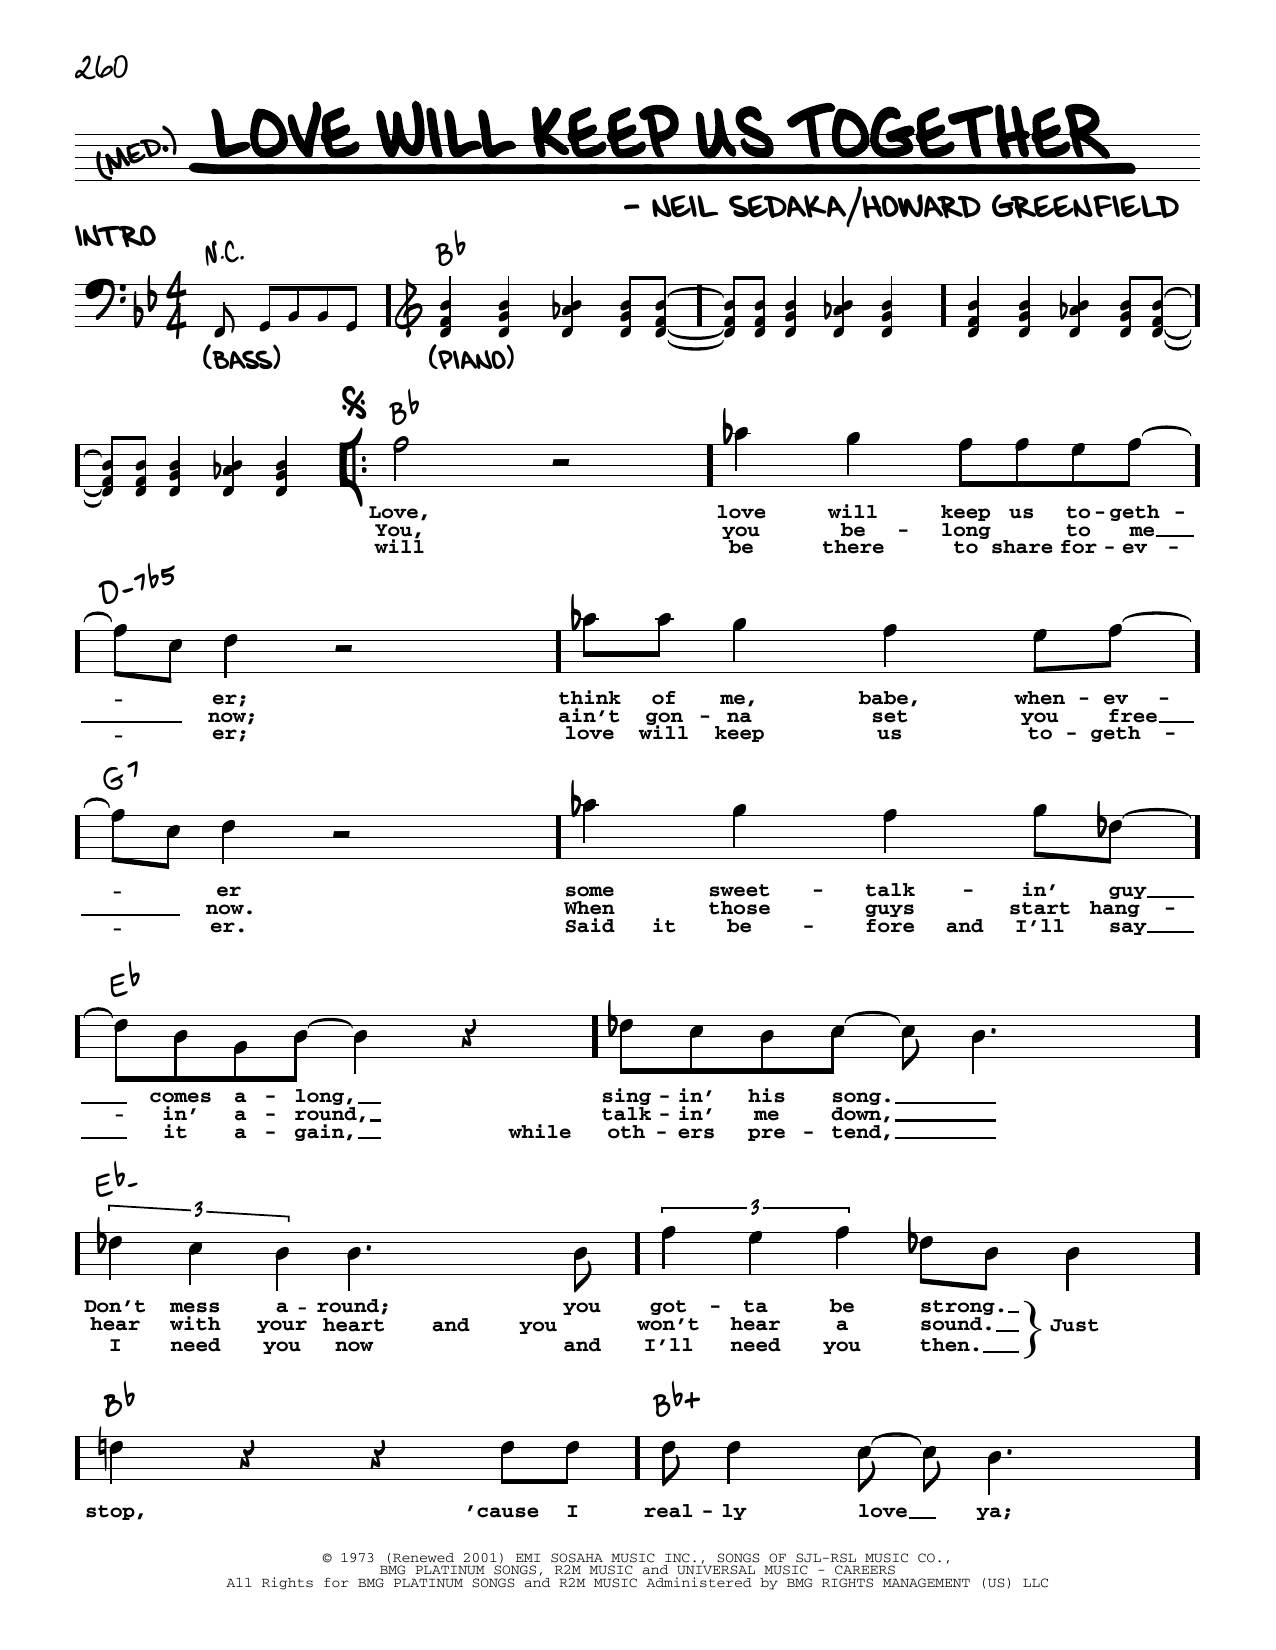 Love Will Keep Us Together Sheet Music   The Captain & Tennille   Real Book  – Melody, Lyrics & Chords